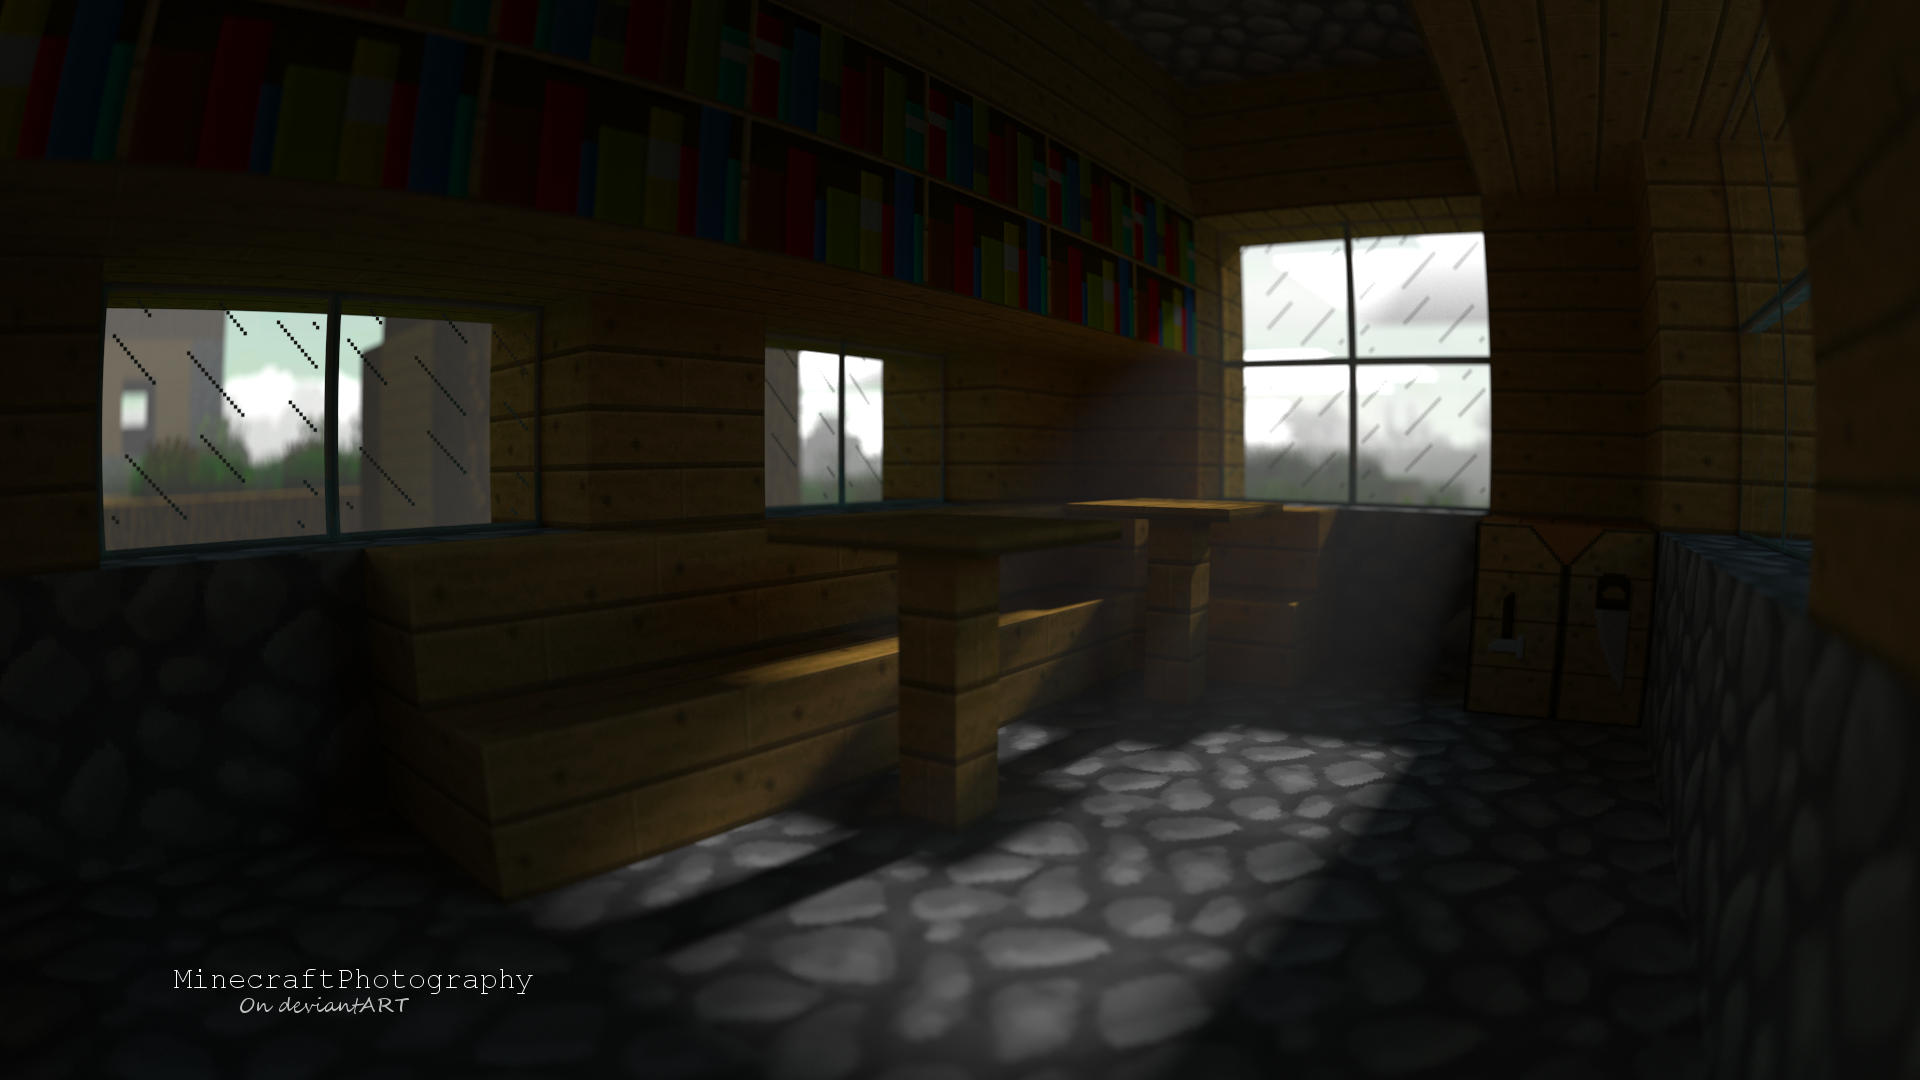 Village Room Minecraft Render And Wallpaper By MinecraftPhotography On Devi